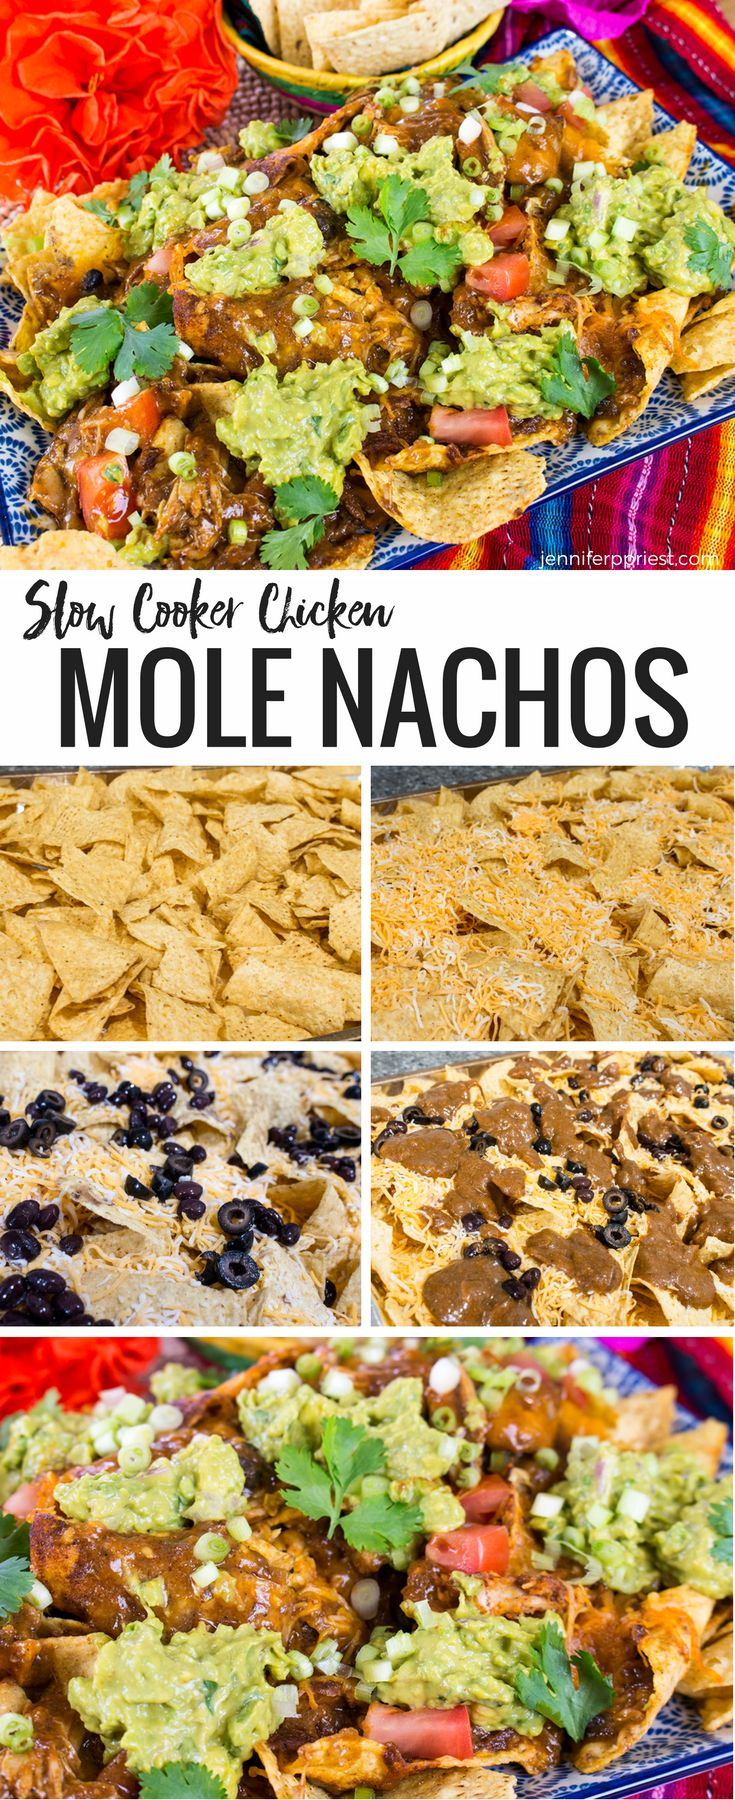 The best nachos ever - take the Mexican recipe for mole and take it to the next level! Make these chicken mole nachos - so delicious with creamy guacamole from Knorr! Get the recipes at jenniferppriest.com #PruebaElSaborDeKnorr - recipe created in partnership with Mirum and Knorr.